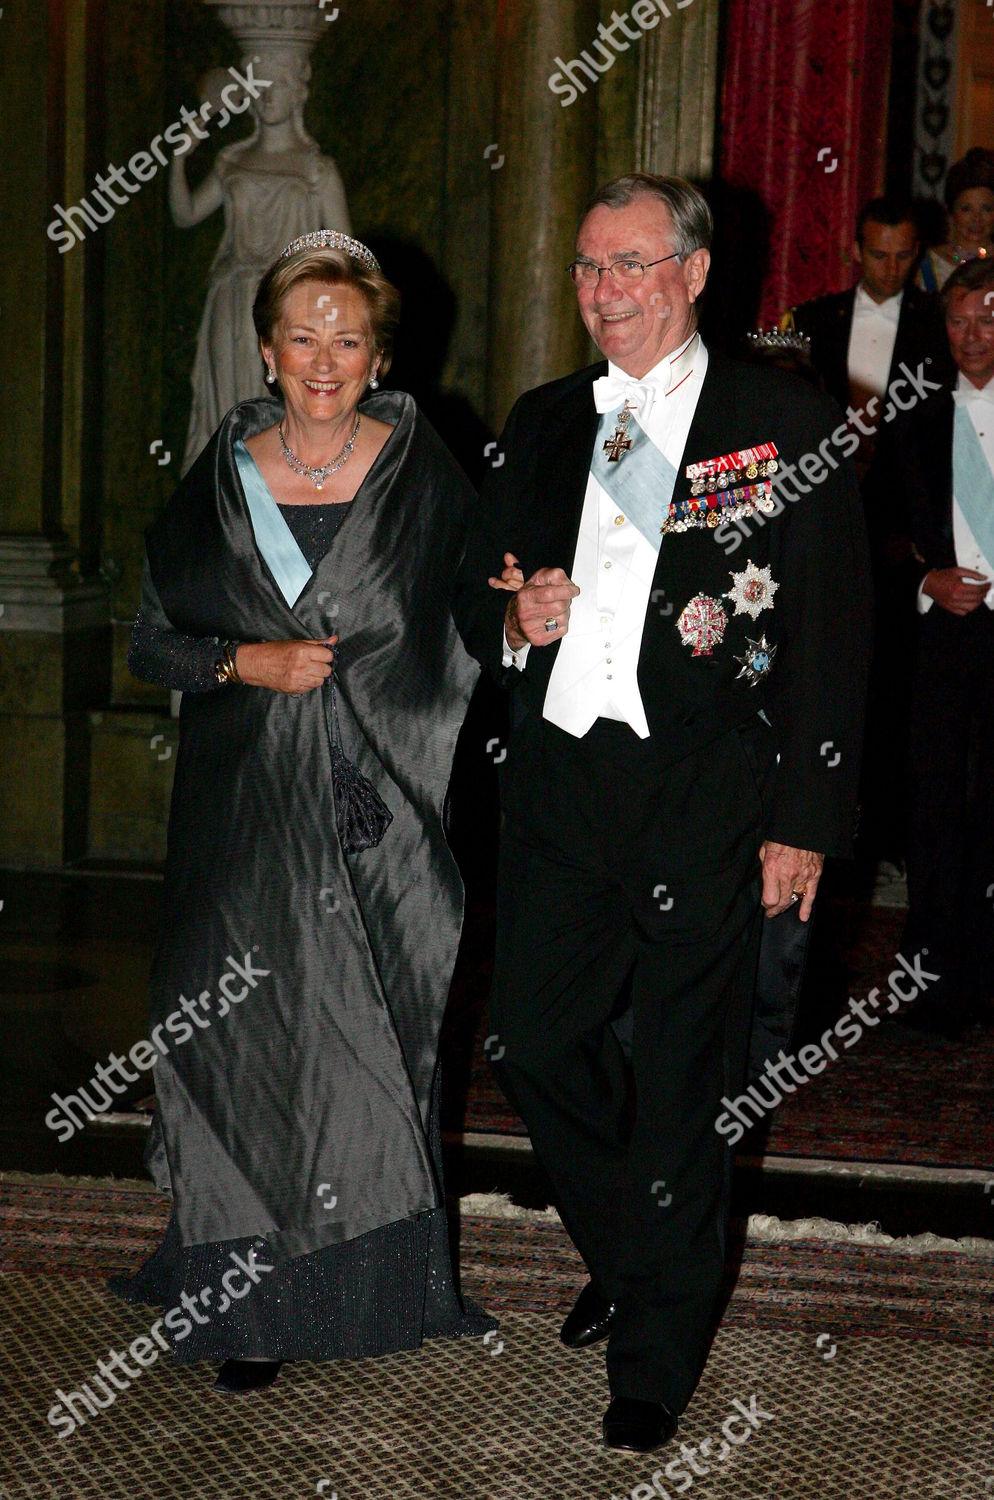 KING CARL GUSTAF 60TH BIRTHDAY GALA DINNER AT THE KINGS PALACE, STOCKHOLM, SWEDEN - 30 APR 2006: стоковое фото